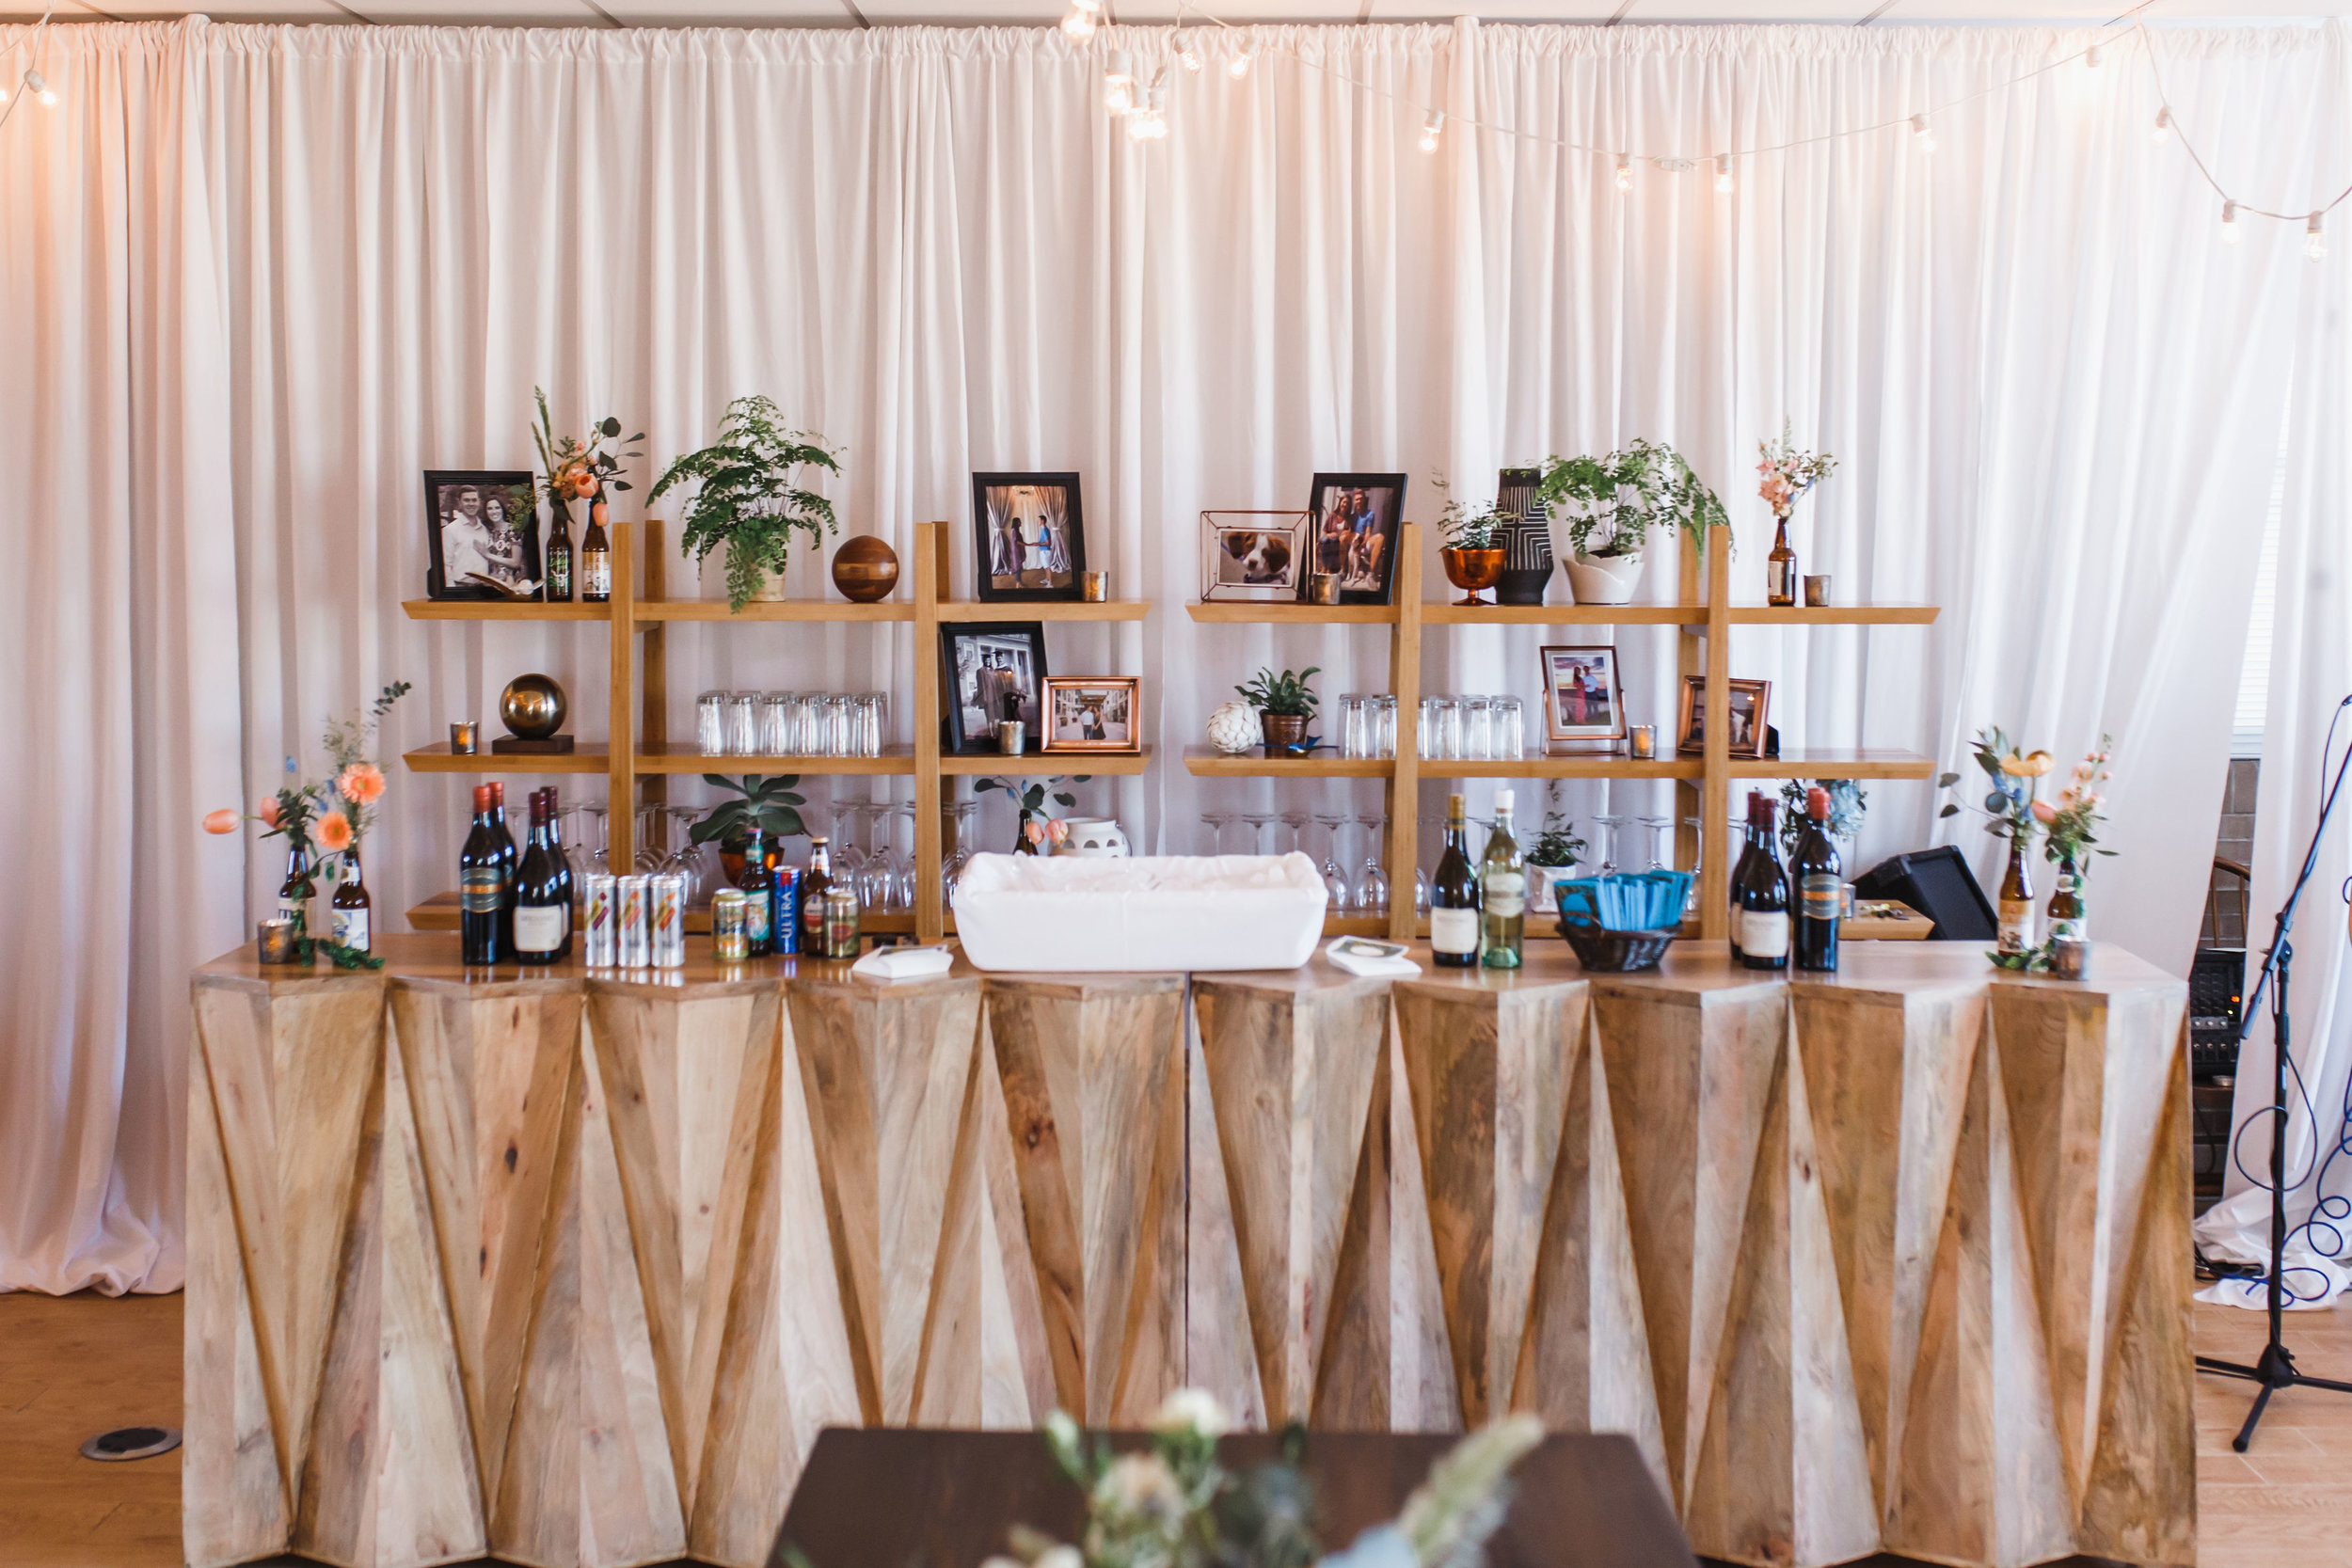 CONNECTICUT EVENT PLANNER DESIGNER - BREWERY THEMED PARTY1-184.jpg